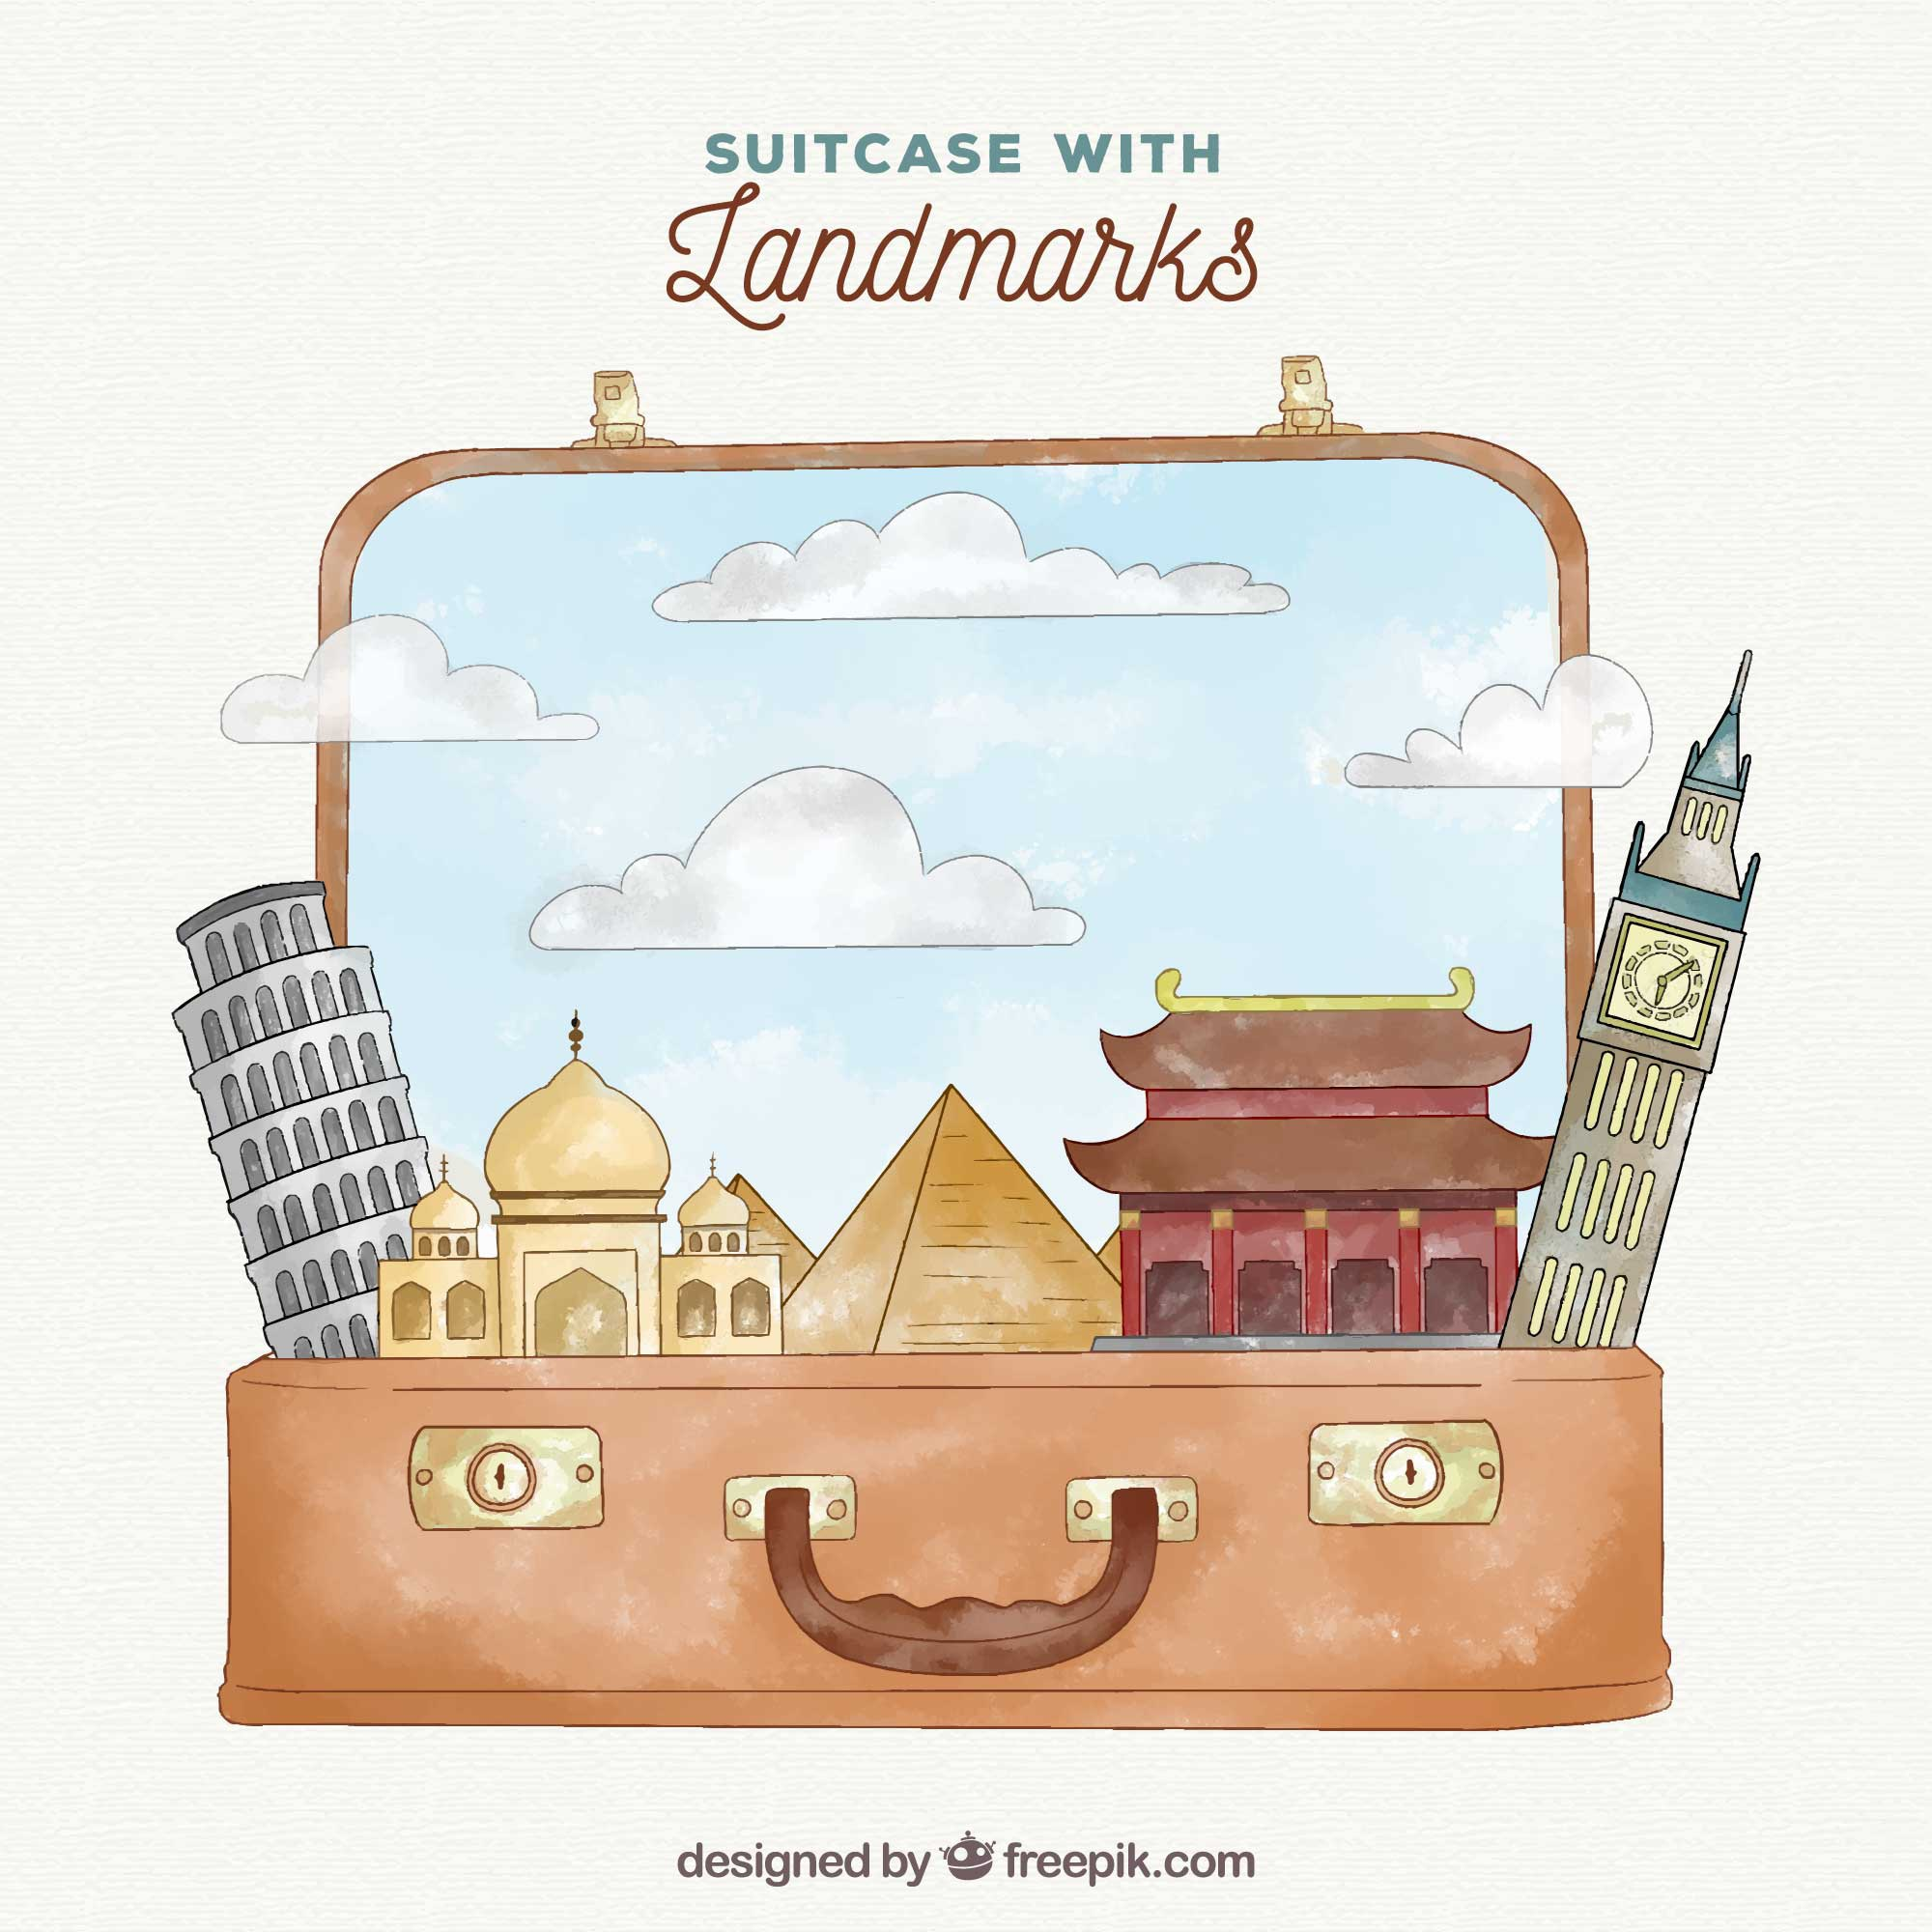 Suitcase with landmarks in watercolor style